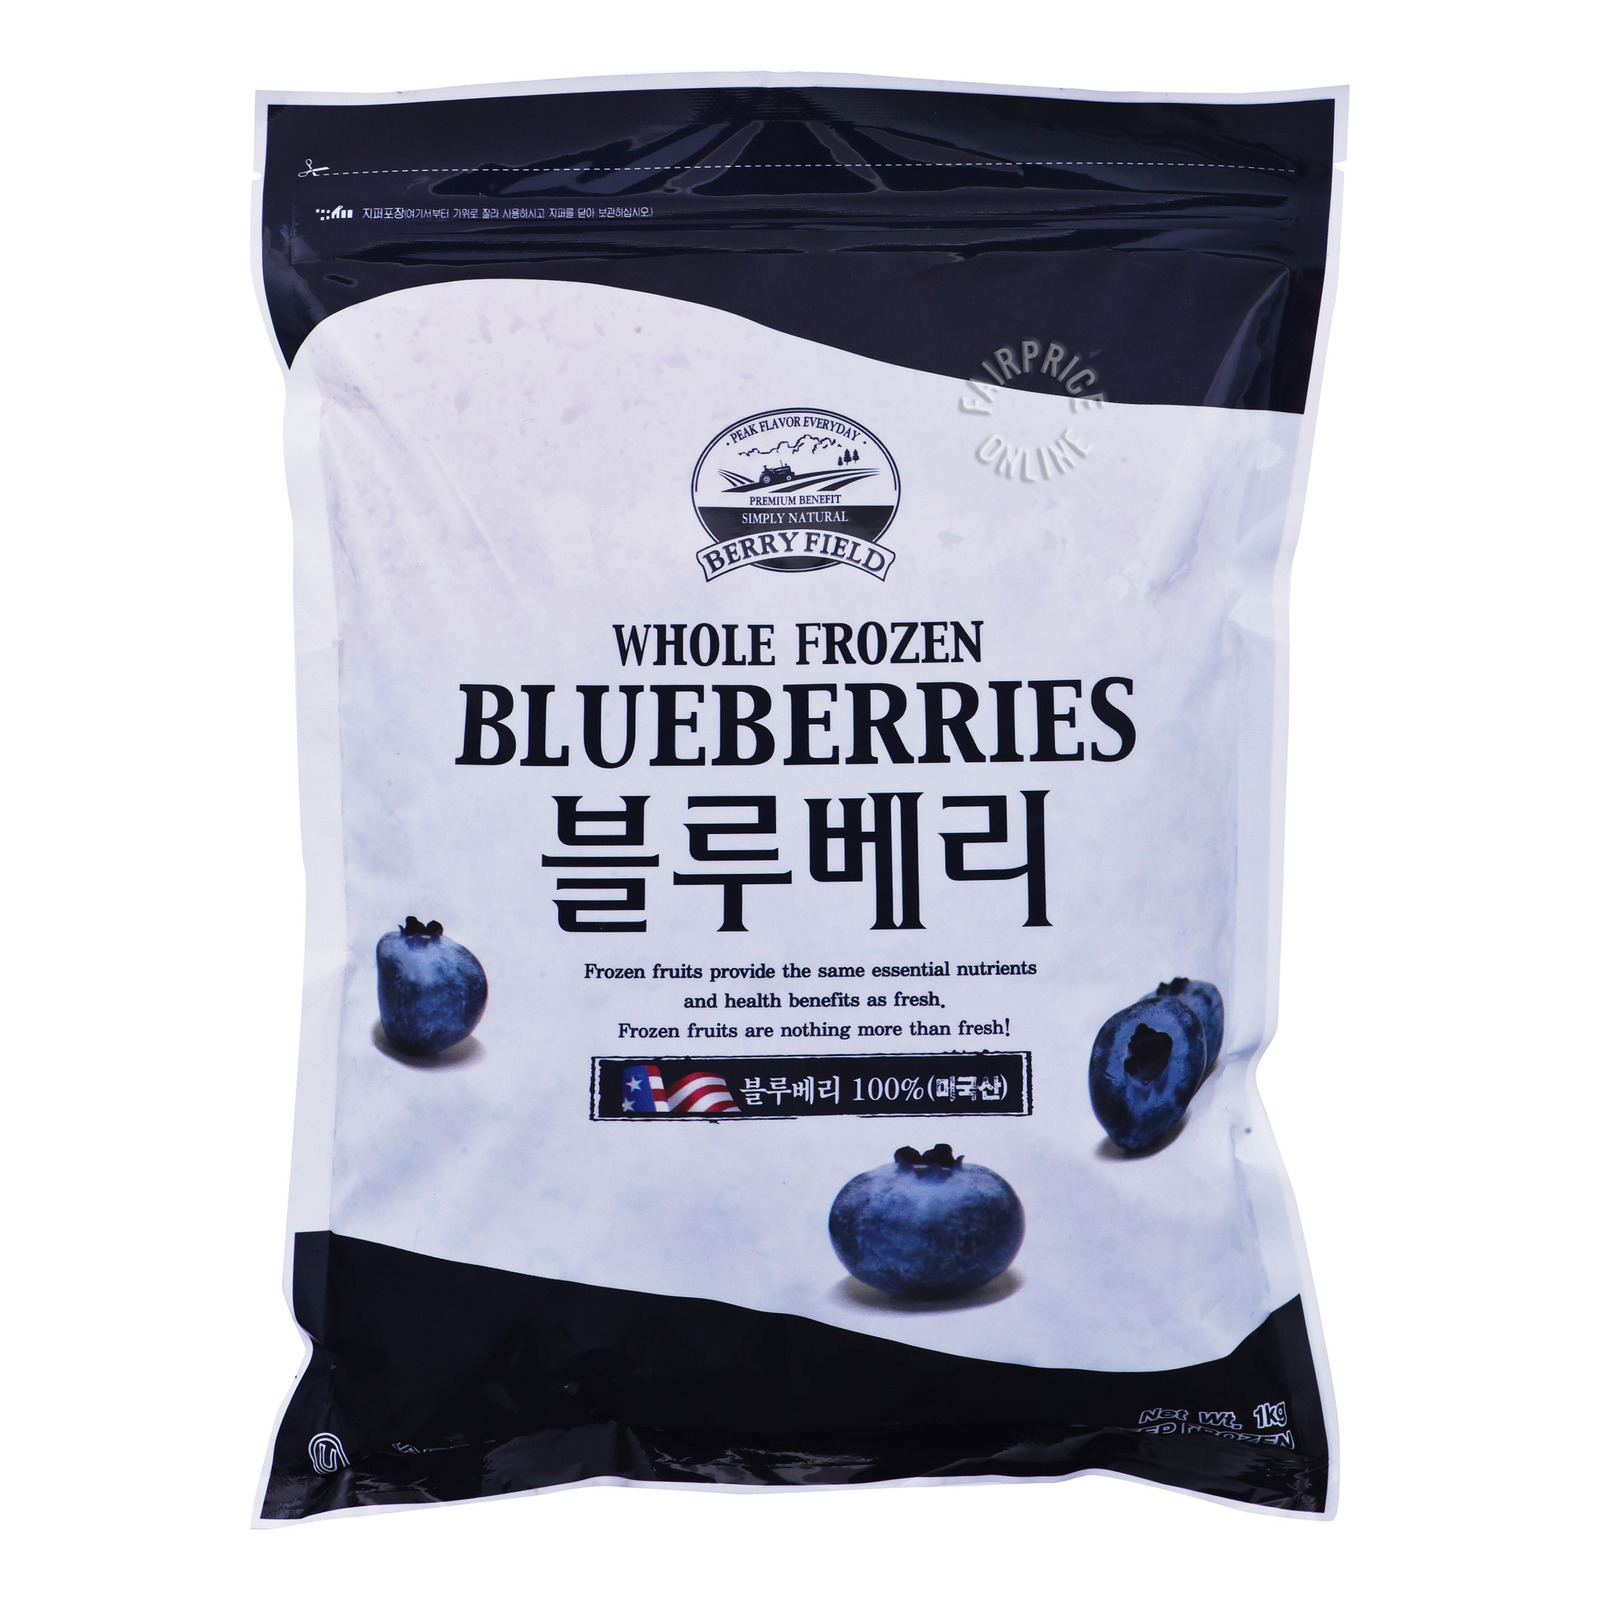 Berryfield Whole Frozen Blueberries